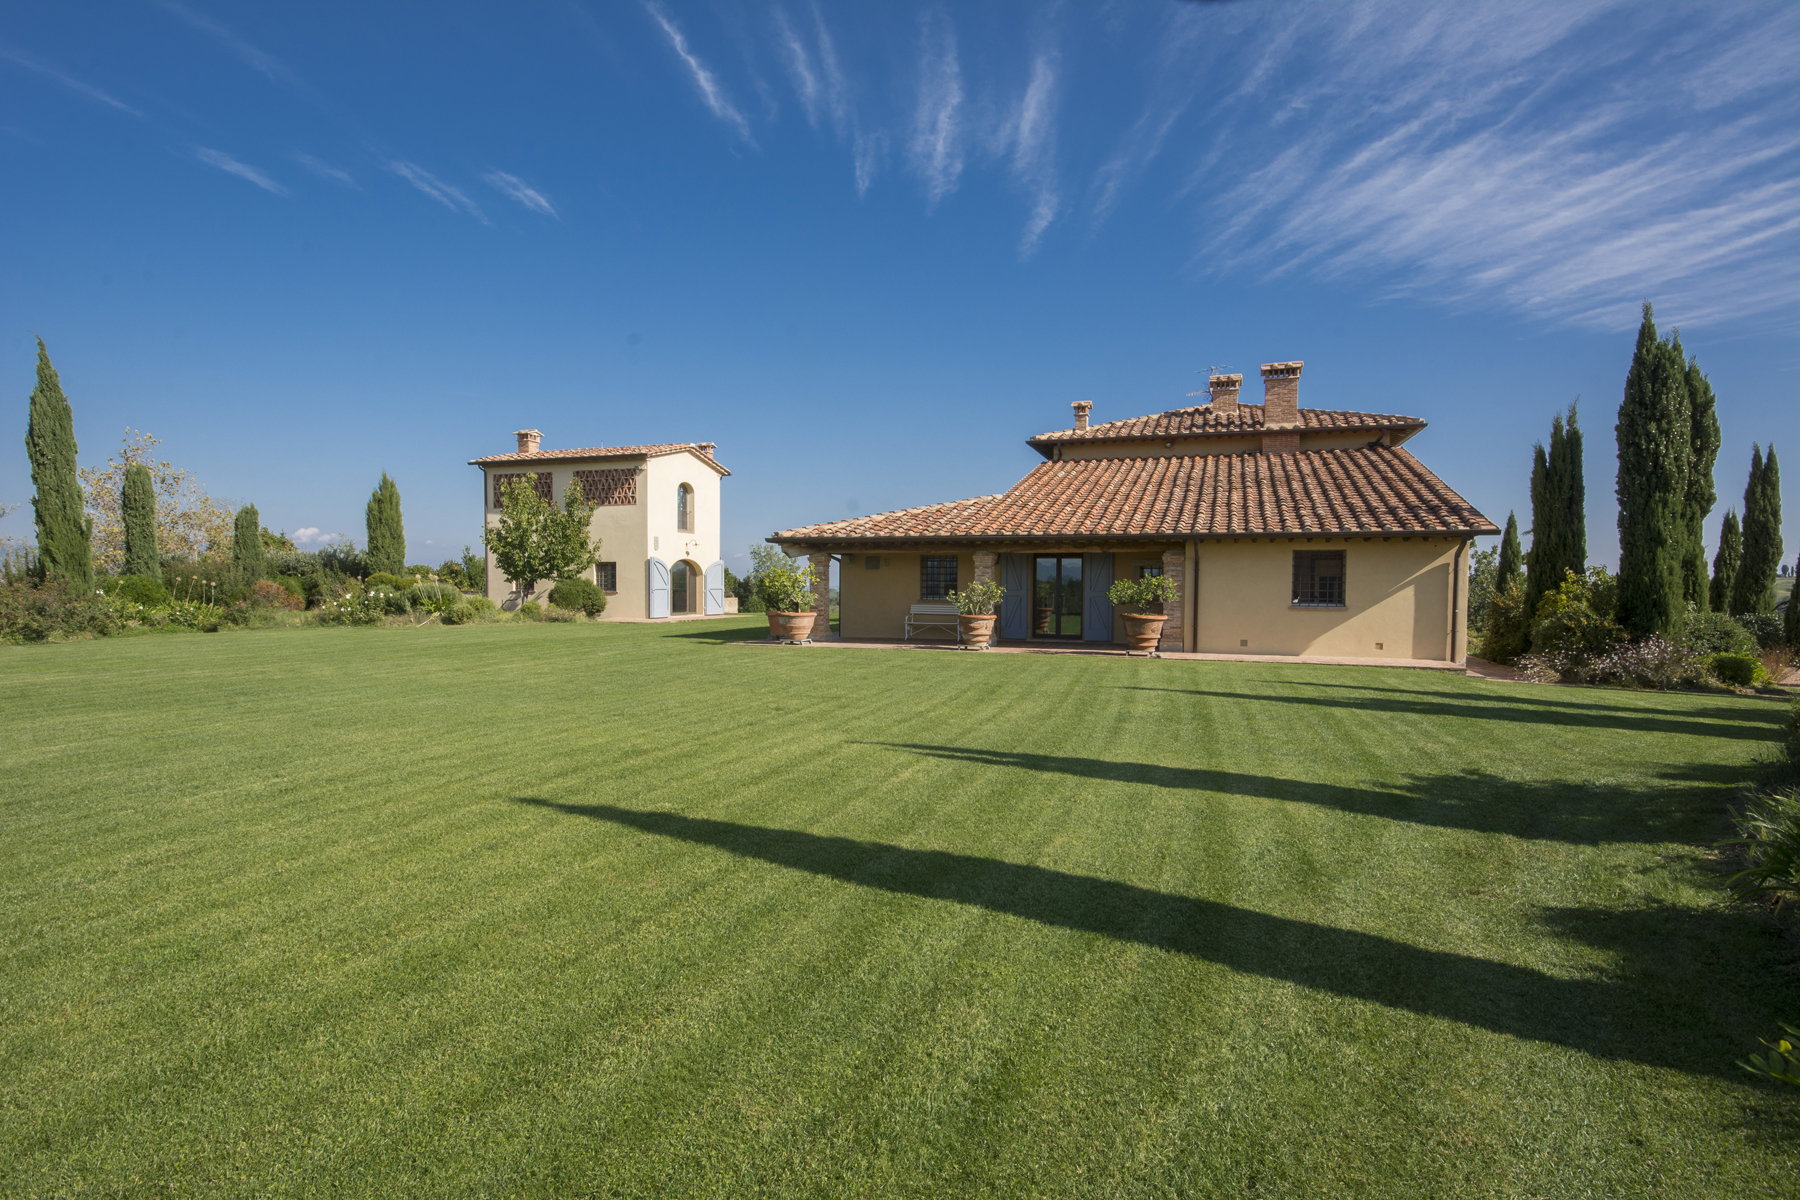 Magnificent villa in the Tuscan countryside